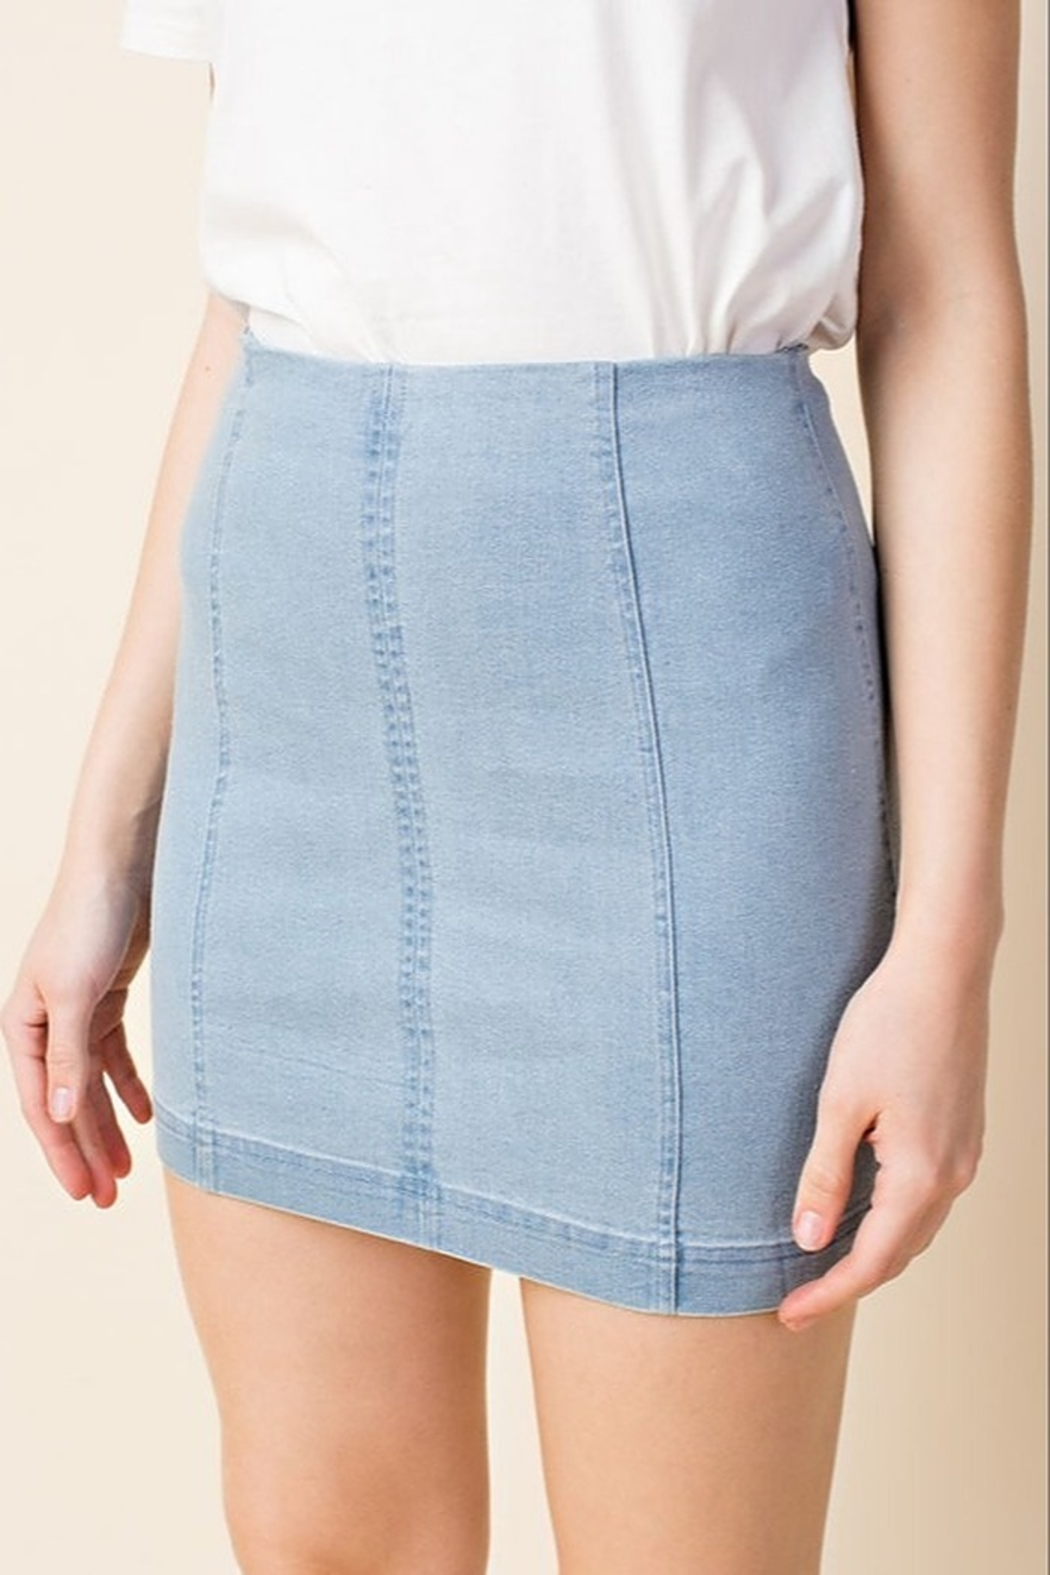 Wild Honey High Waist Denim Skirt - Main Image